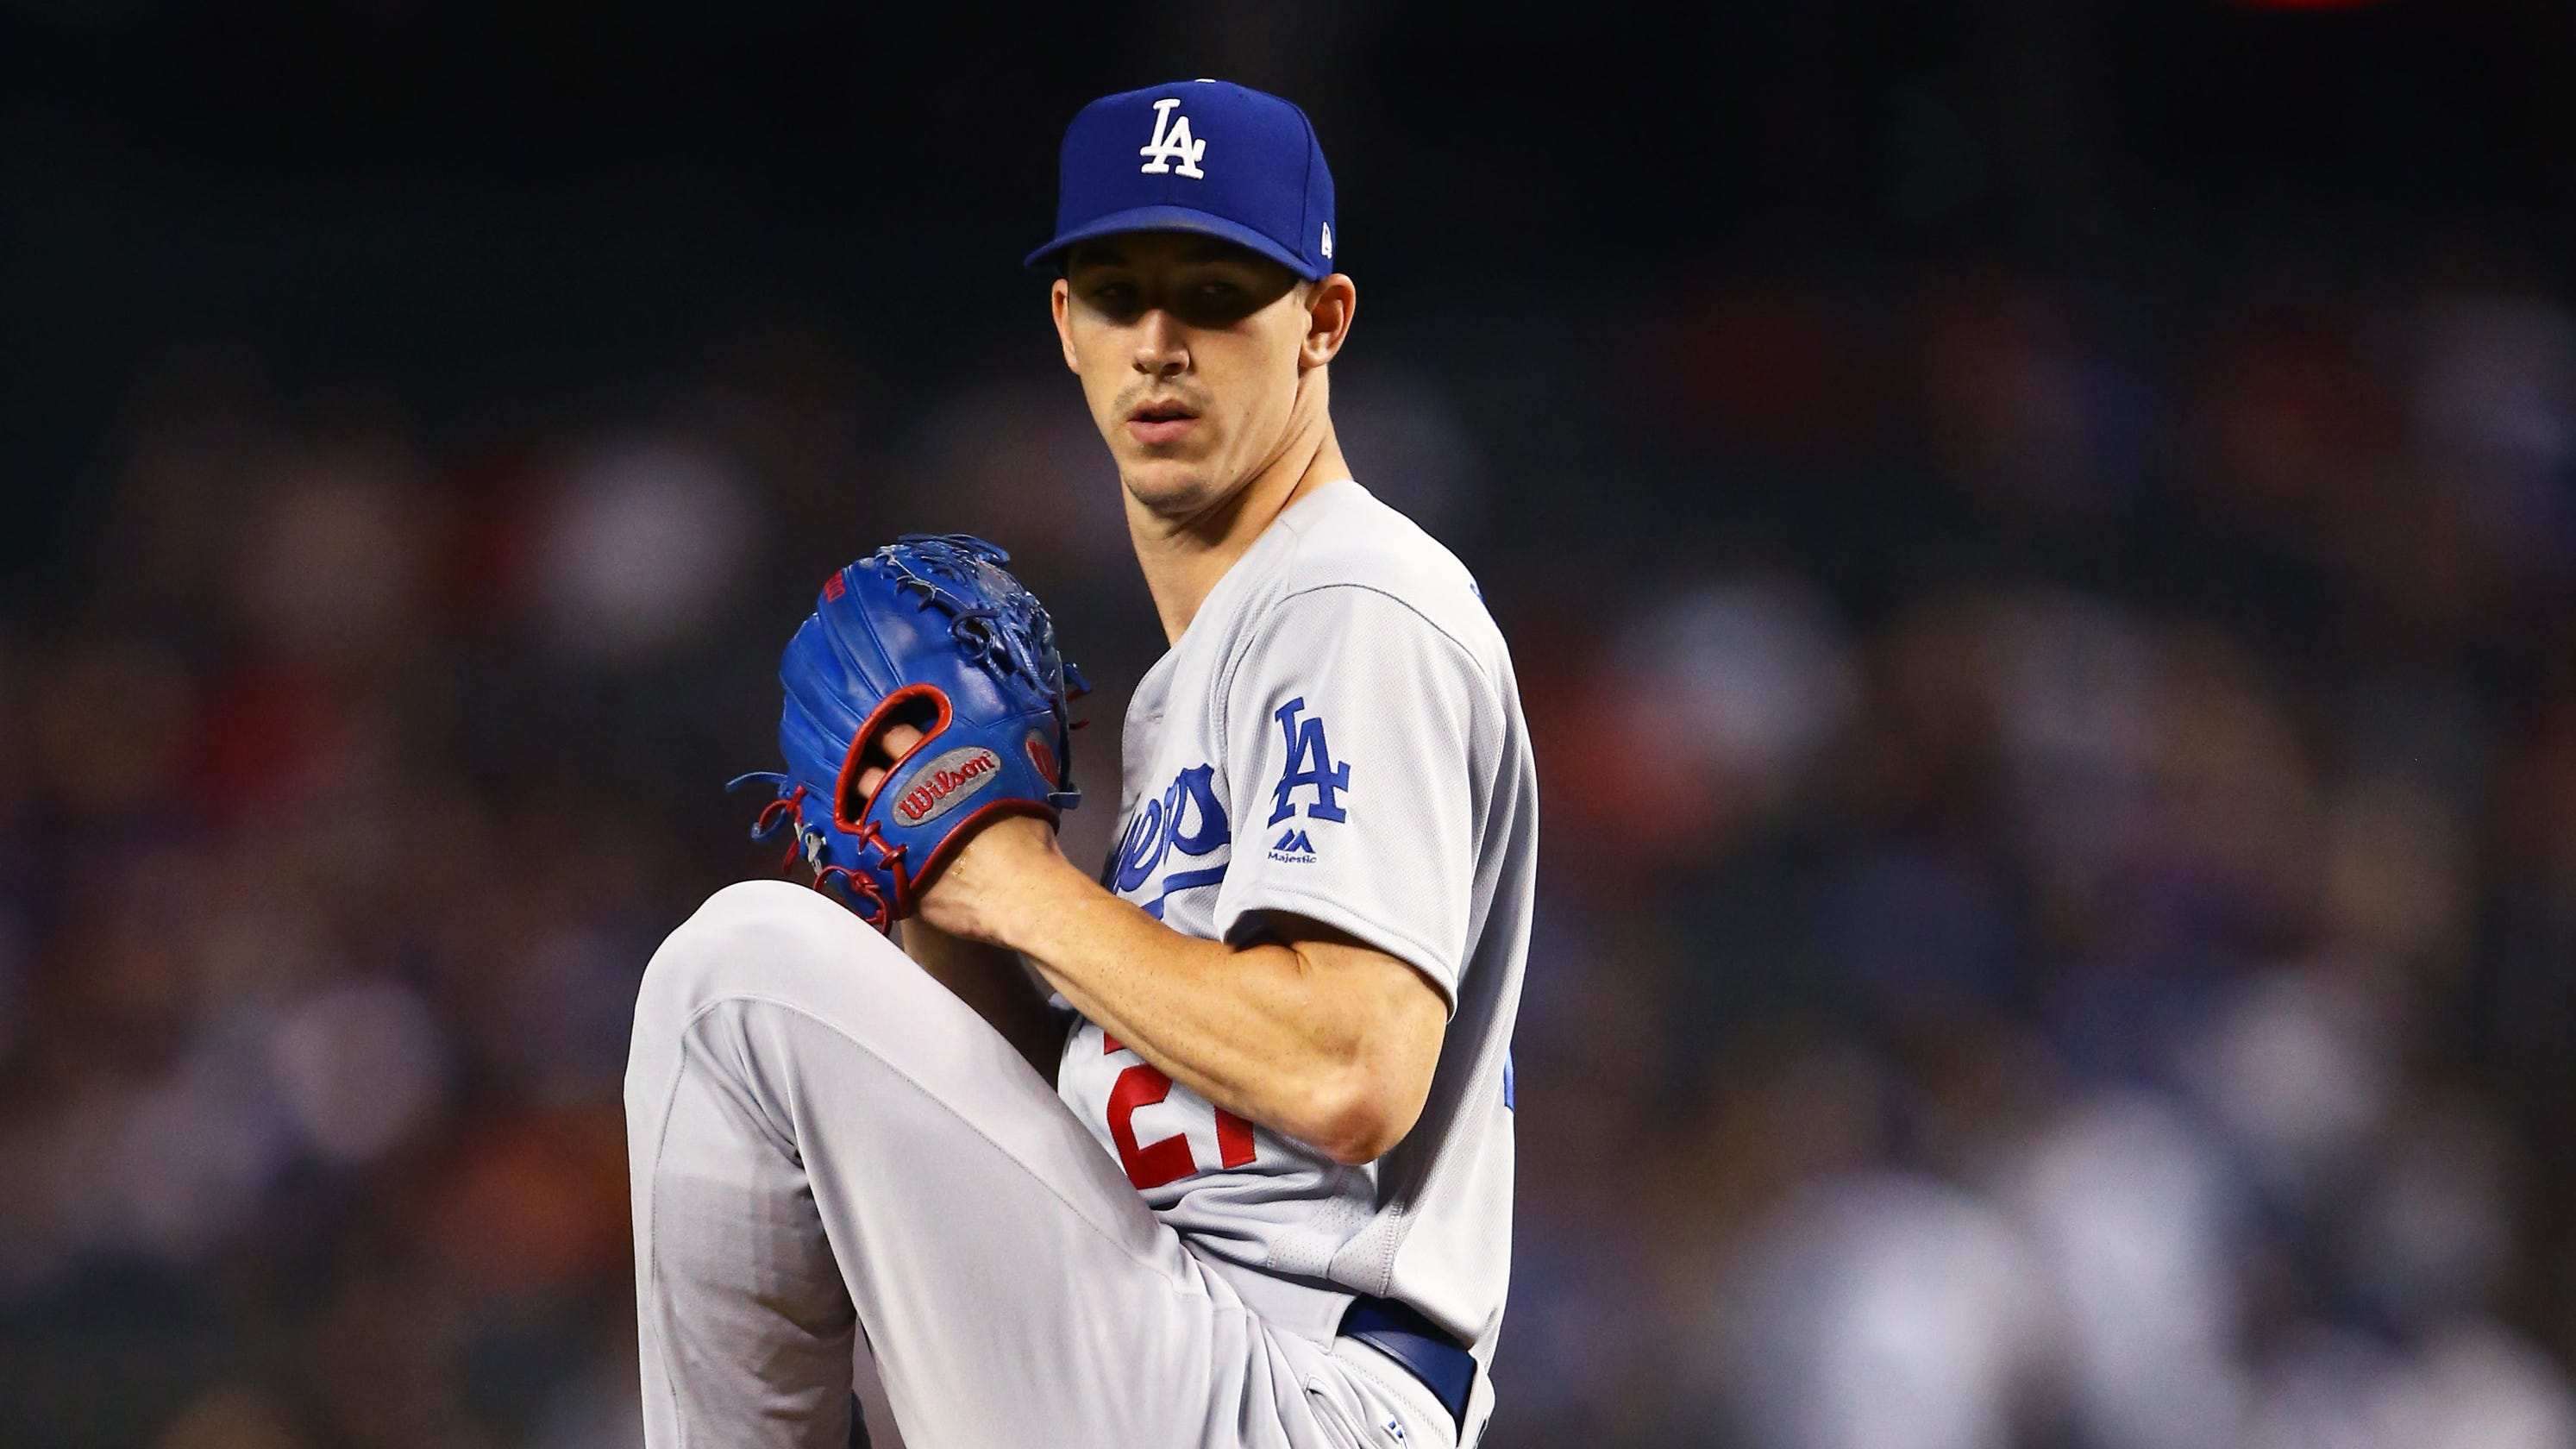 Rookie Walker Buehler has chance to make Dodgers virtually unbeatable in  MLB playoffs 5f31b6ec8a7